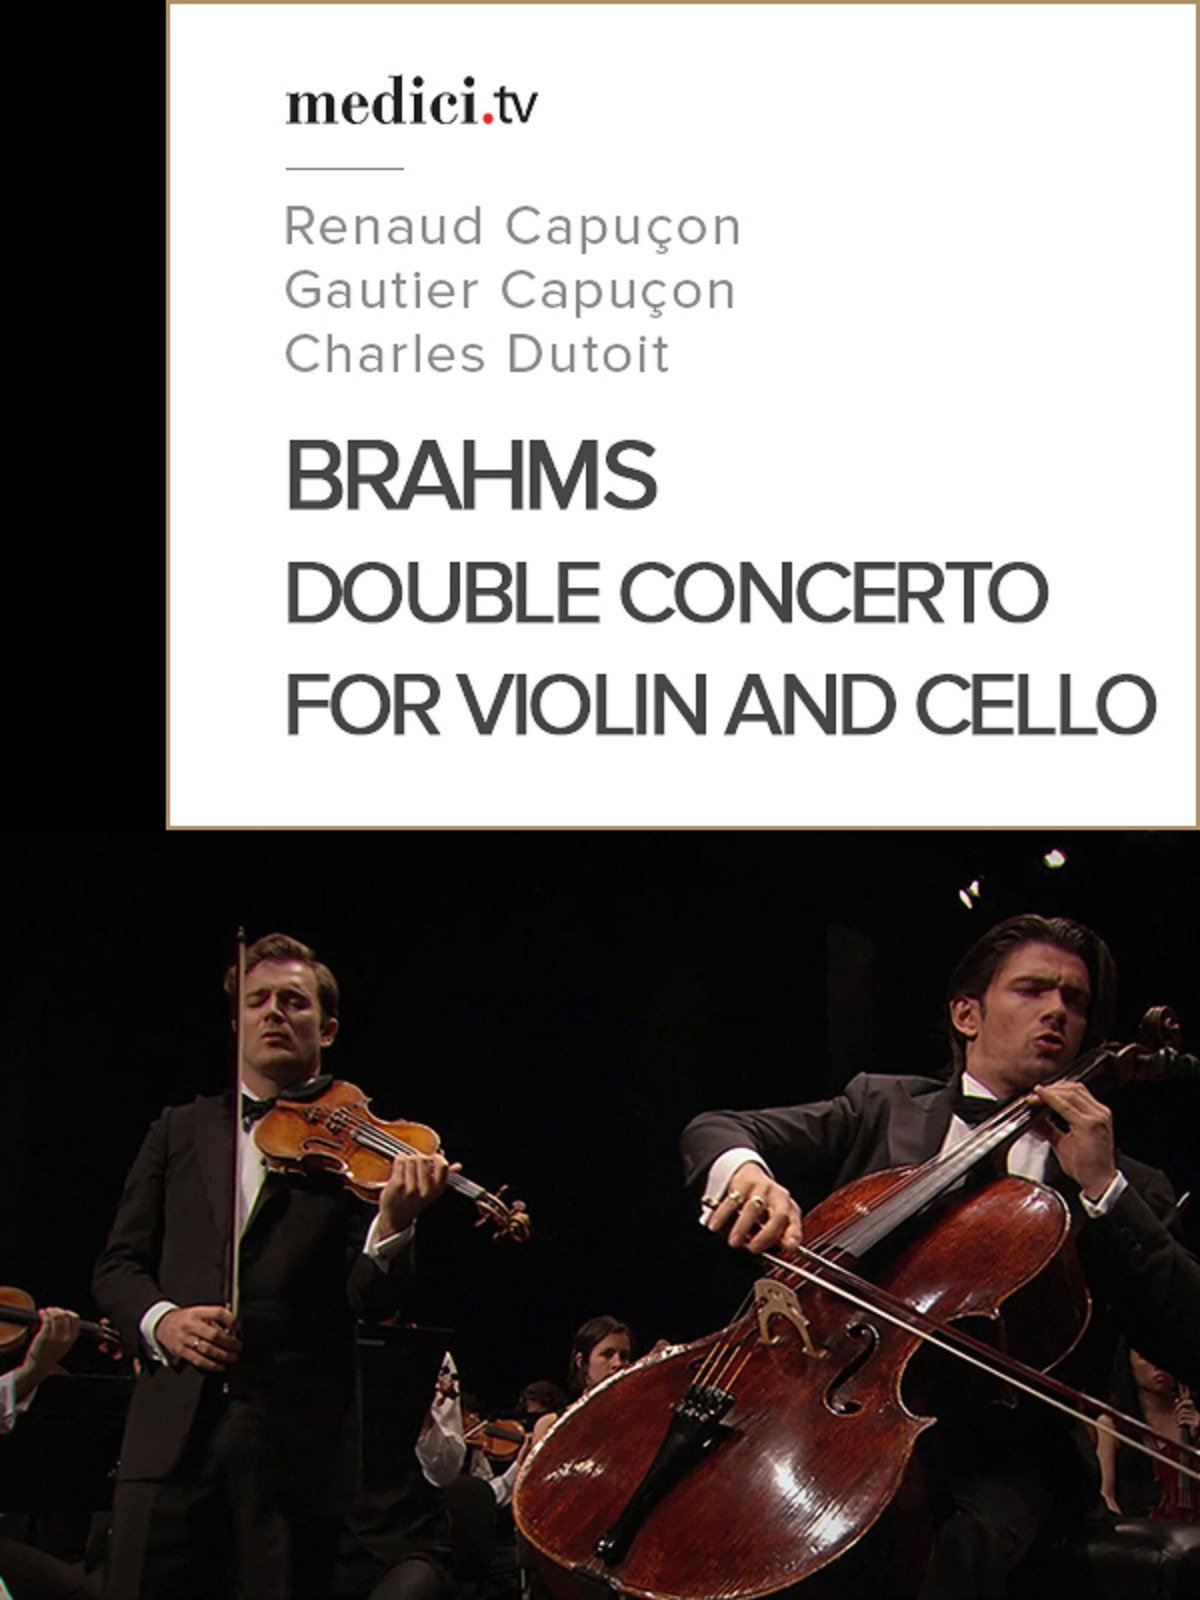 Brahms, Double Concerto for Violin and Cello in A minor